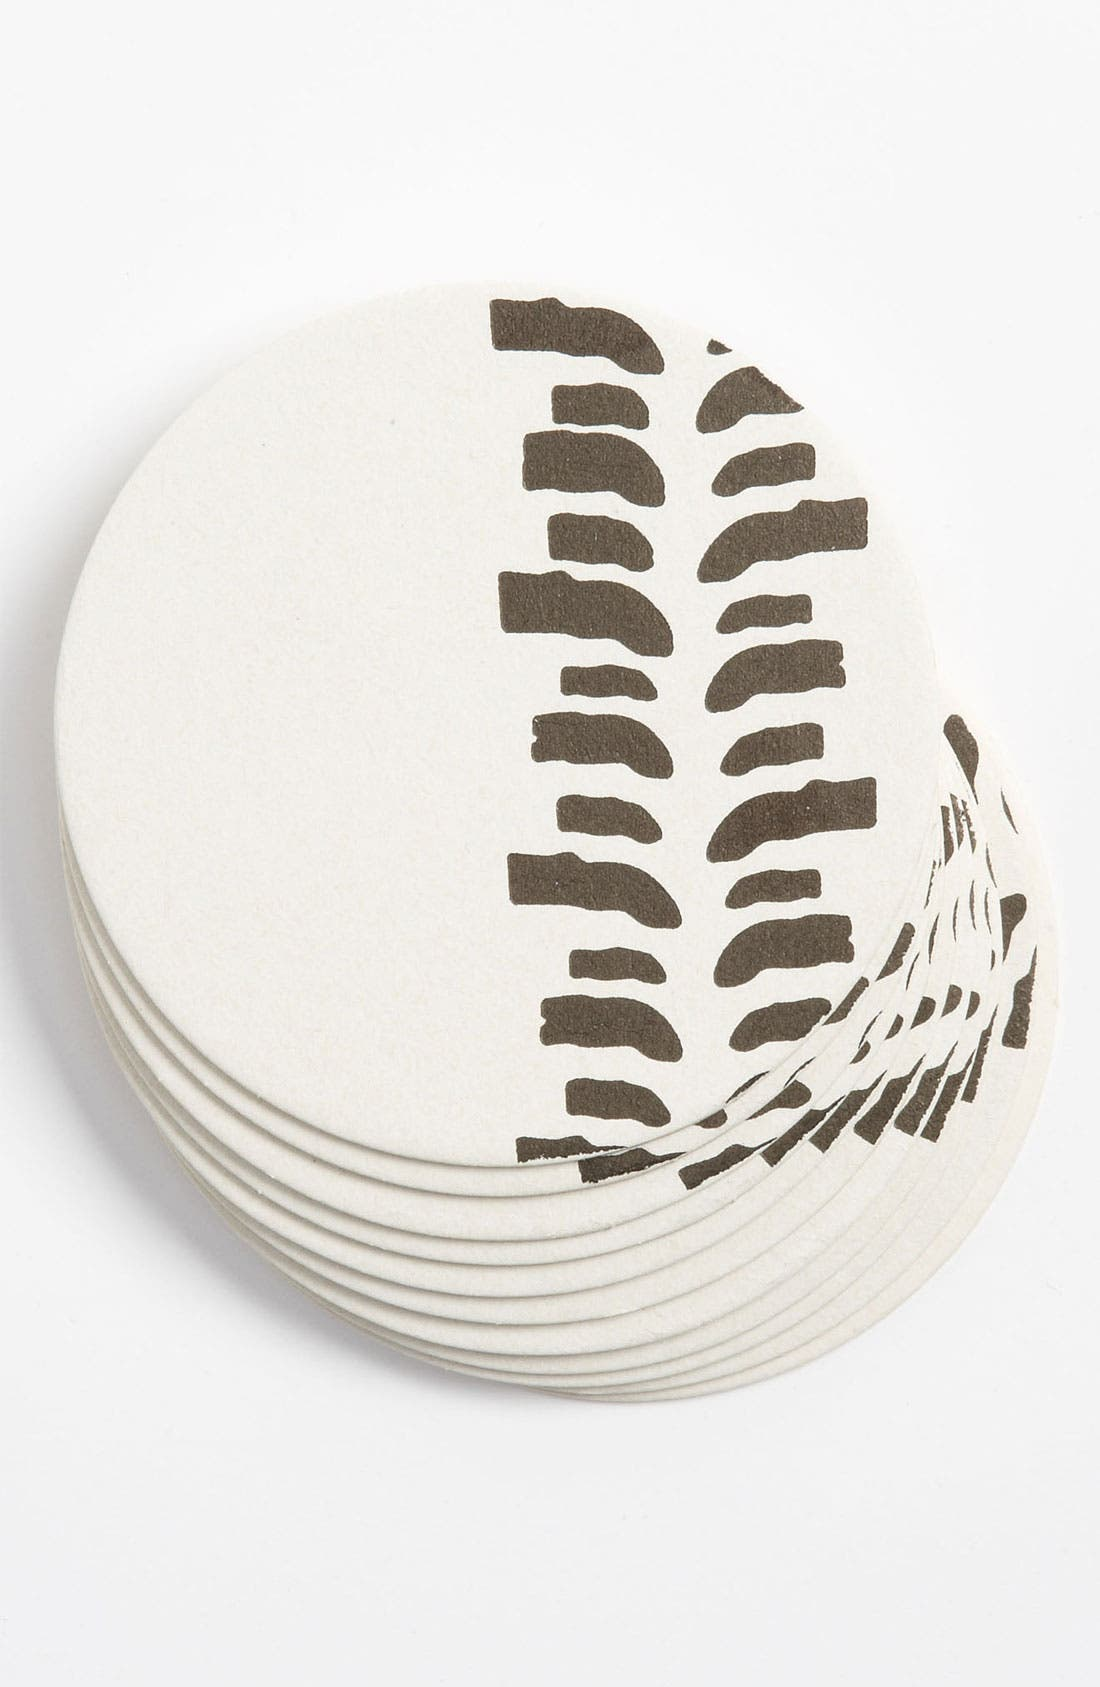 Alternate Image 1 Selected - 'Truck Tires' Letterpress Coasters (Set of 10)